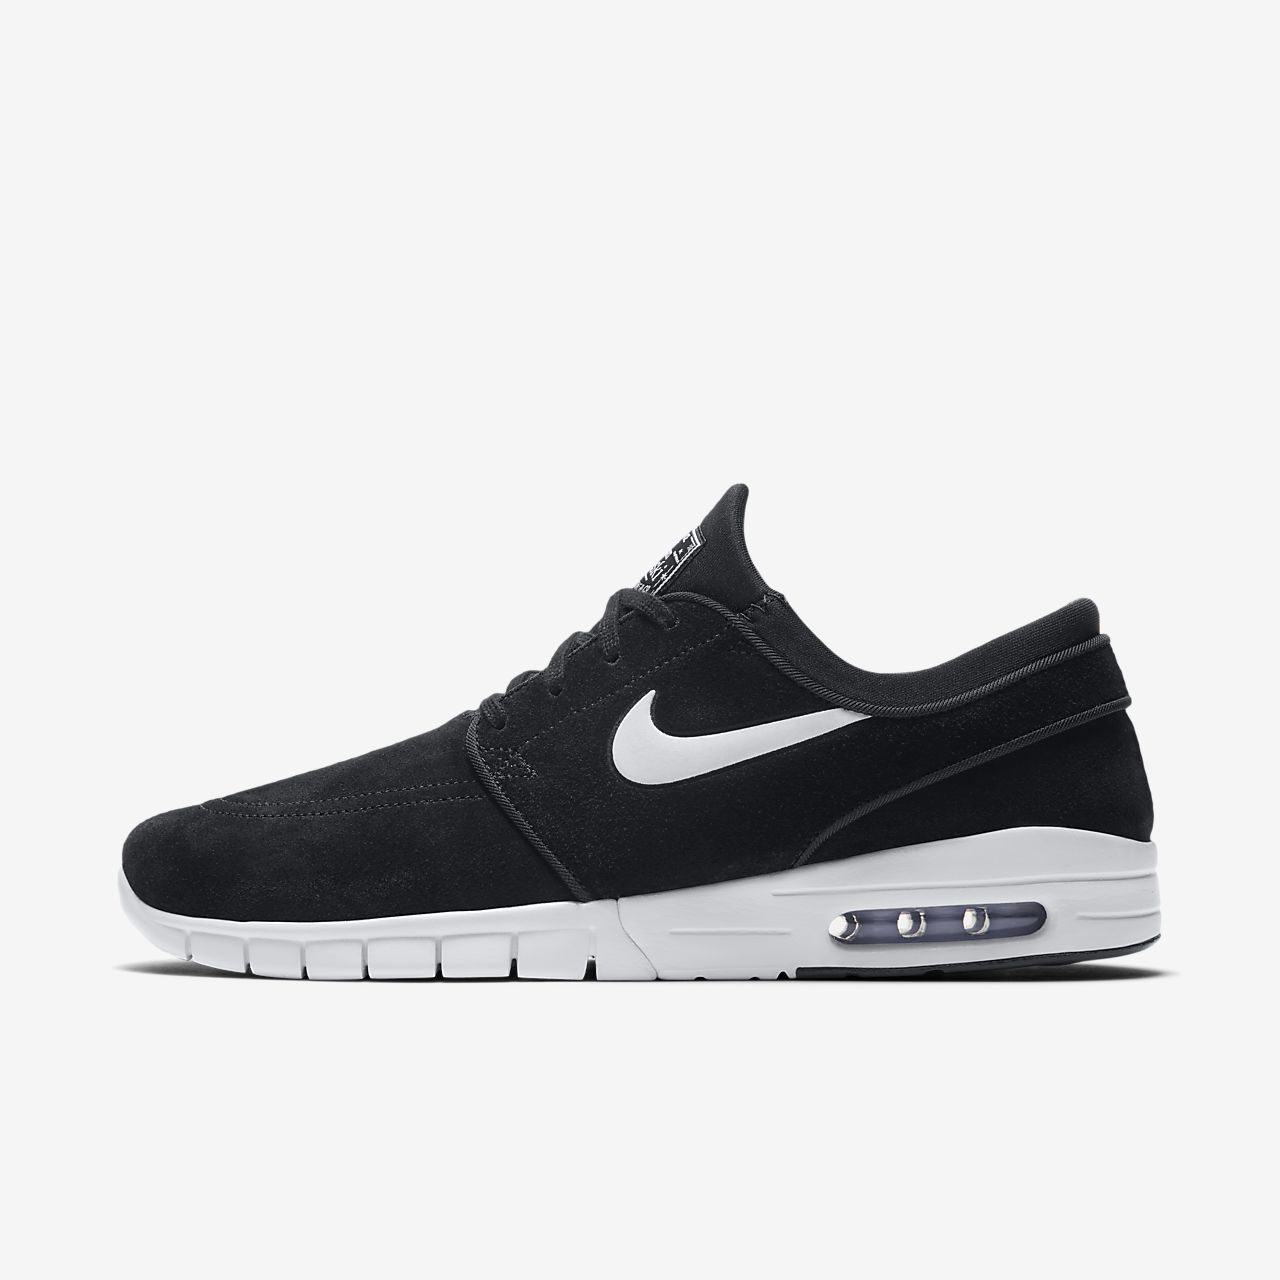 buy popular b782d a5fa4 ... Nike SB Stefan Janoski Max L Men s Skateboarding Shoe